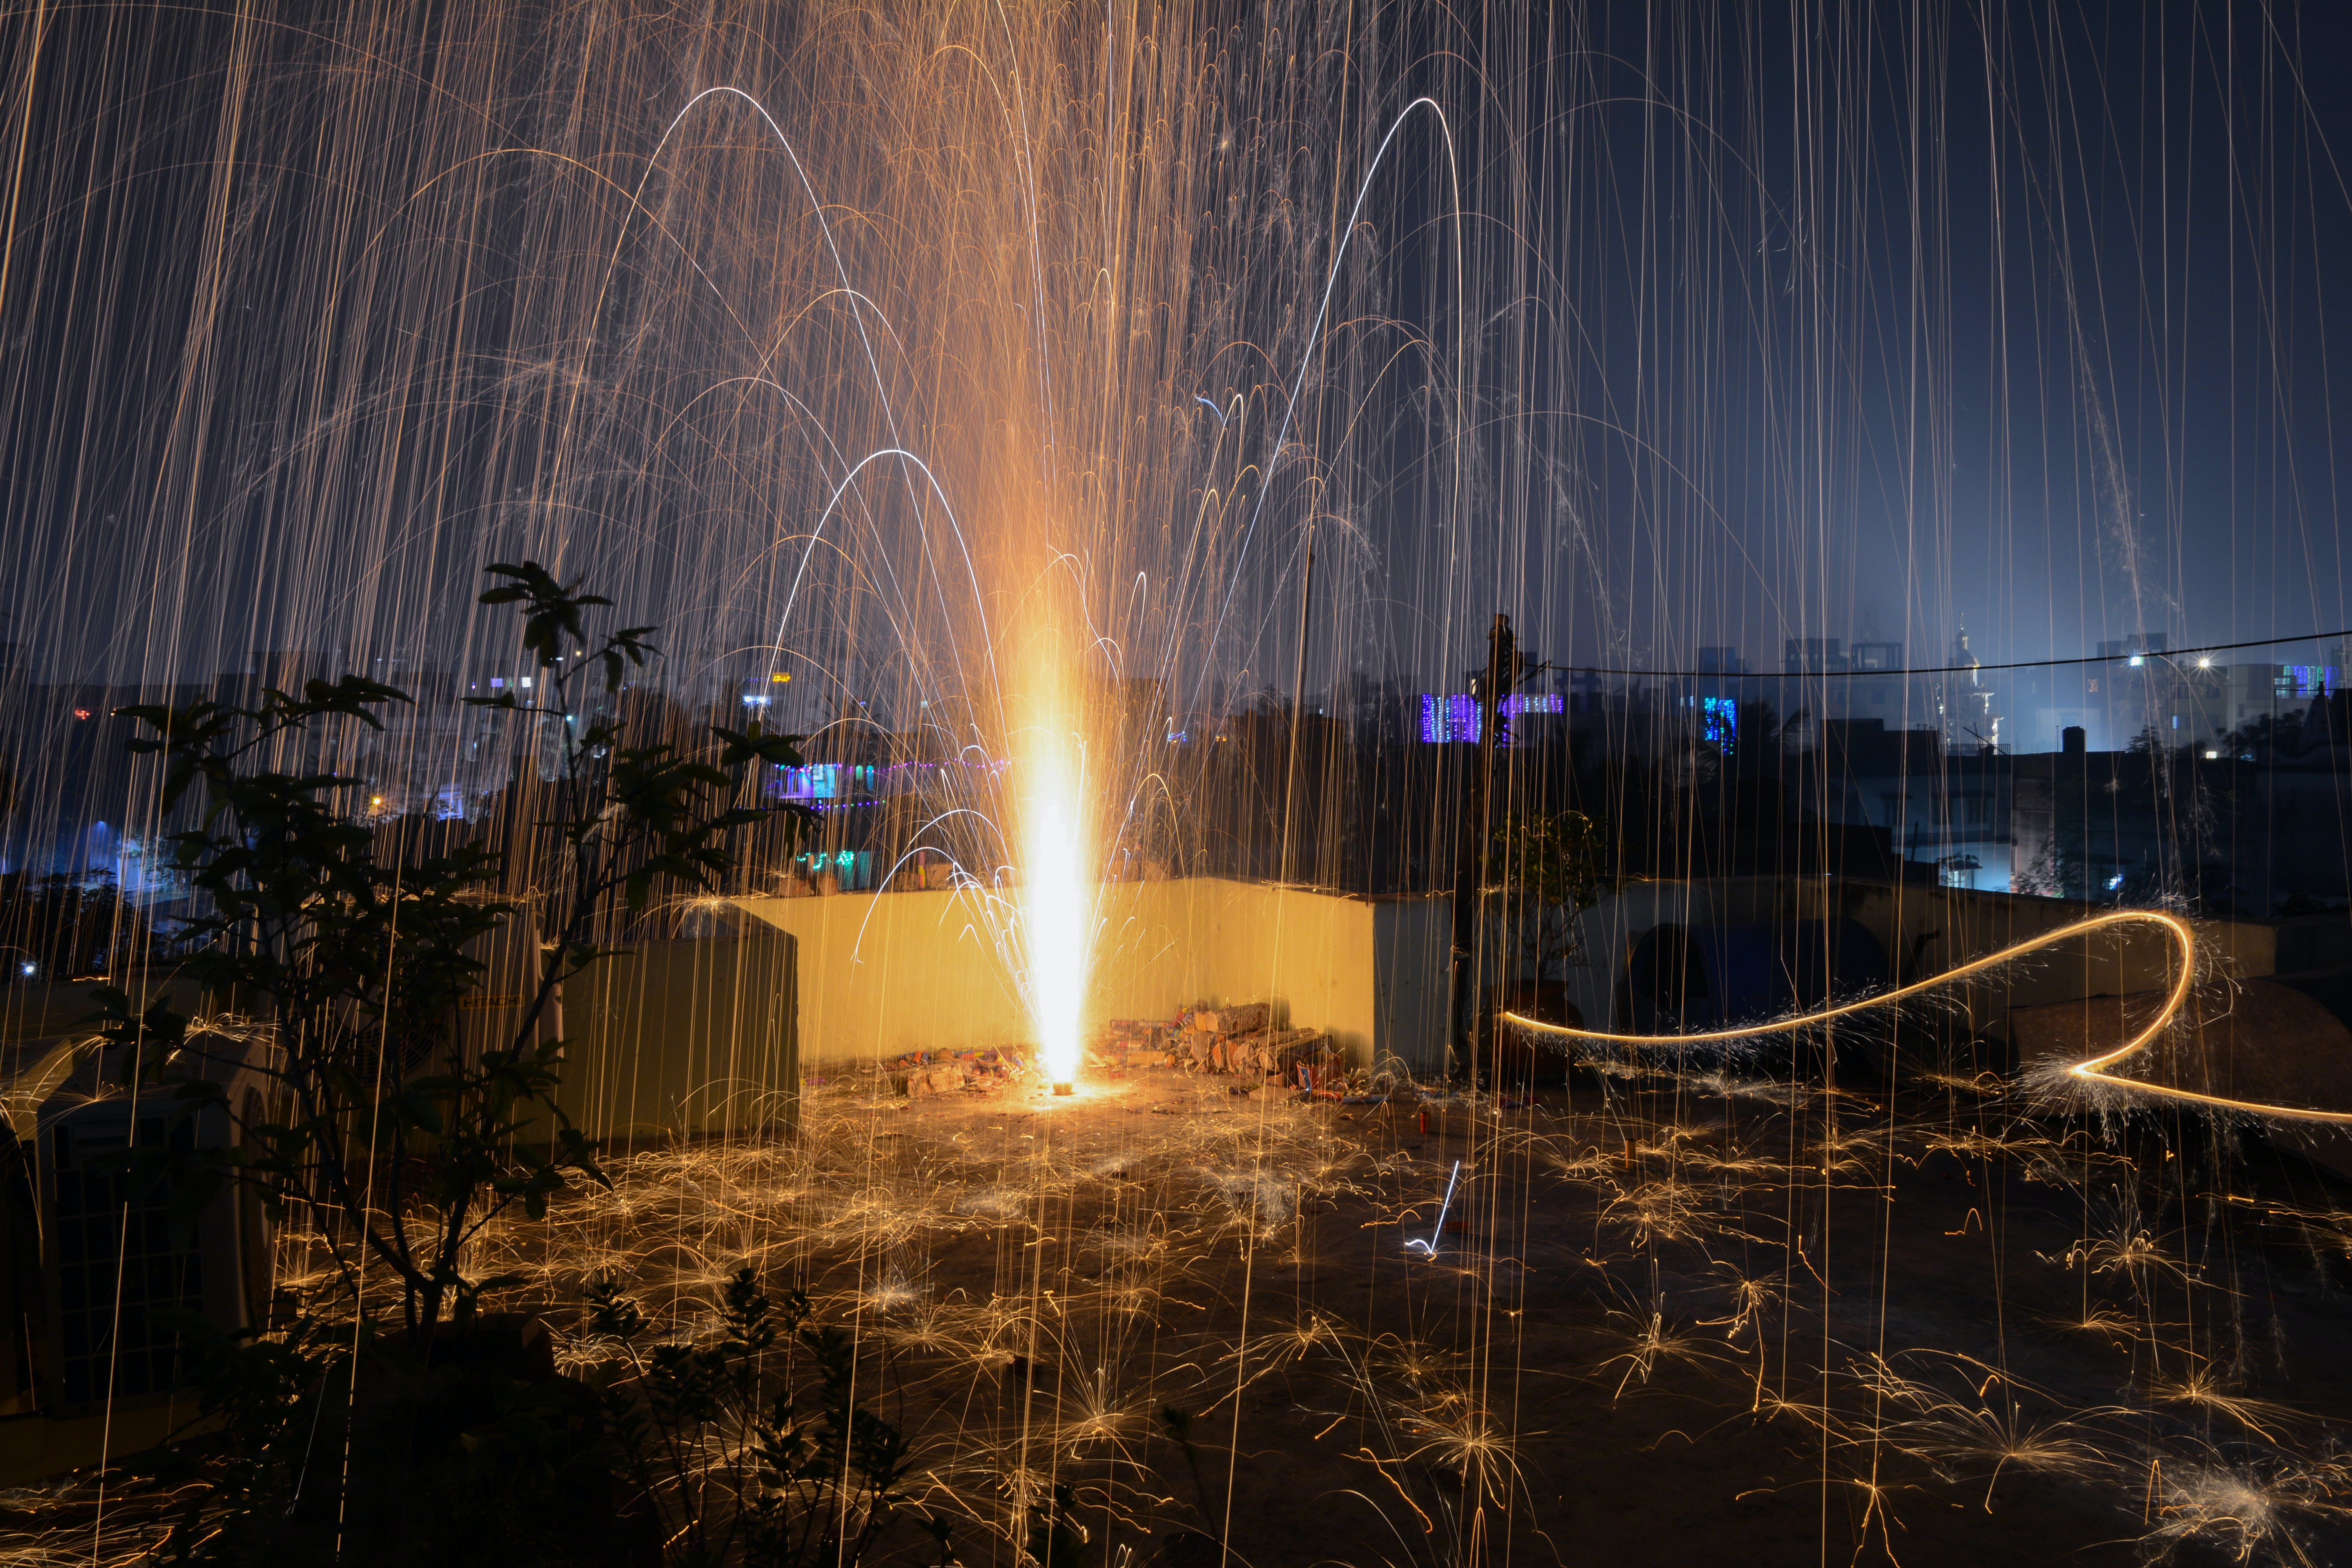 Steel Wool Photography of Plant on Roof Top during Nighttime